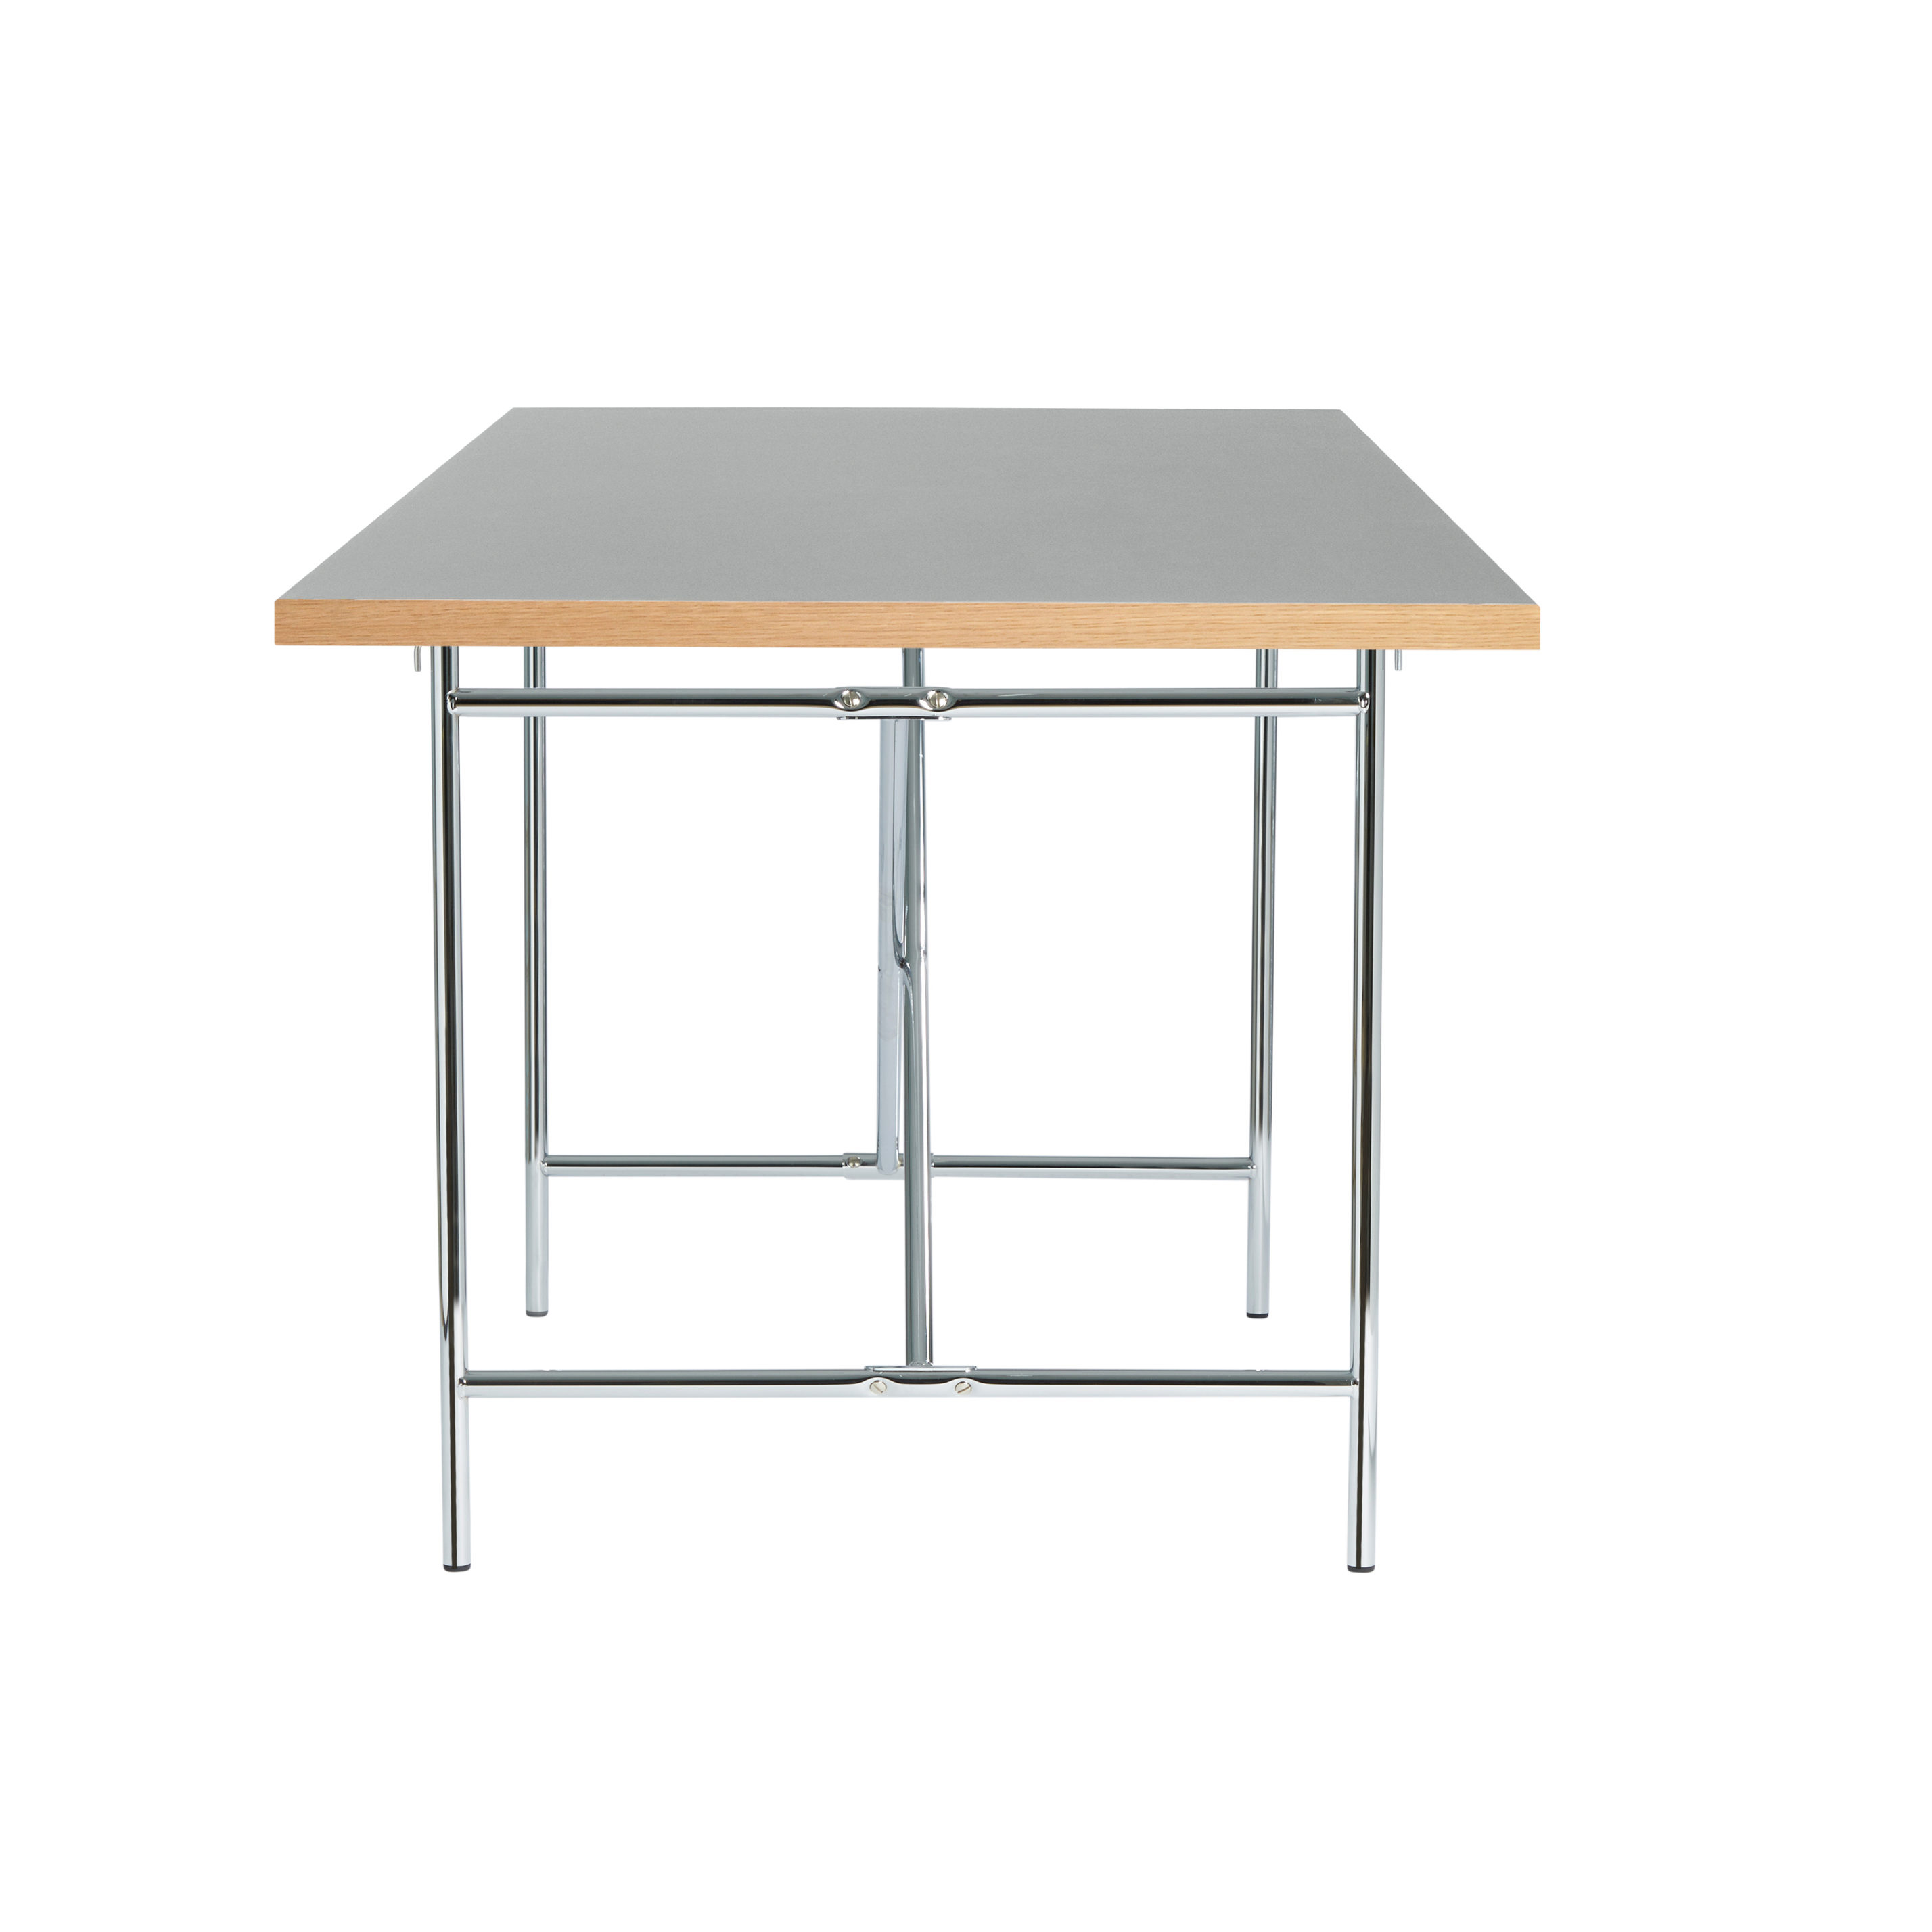 Eiermann 2 Dining Table 200 x 90